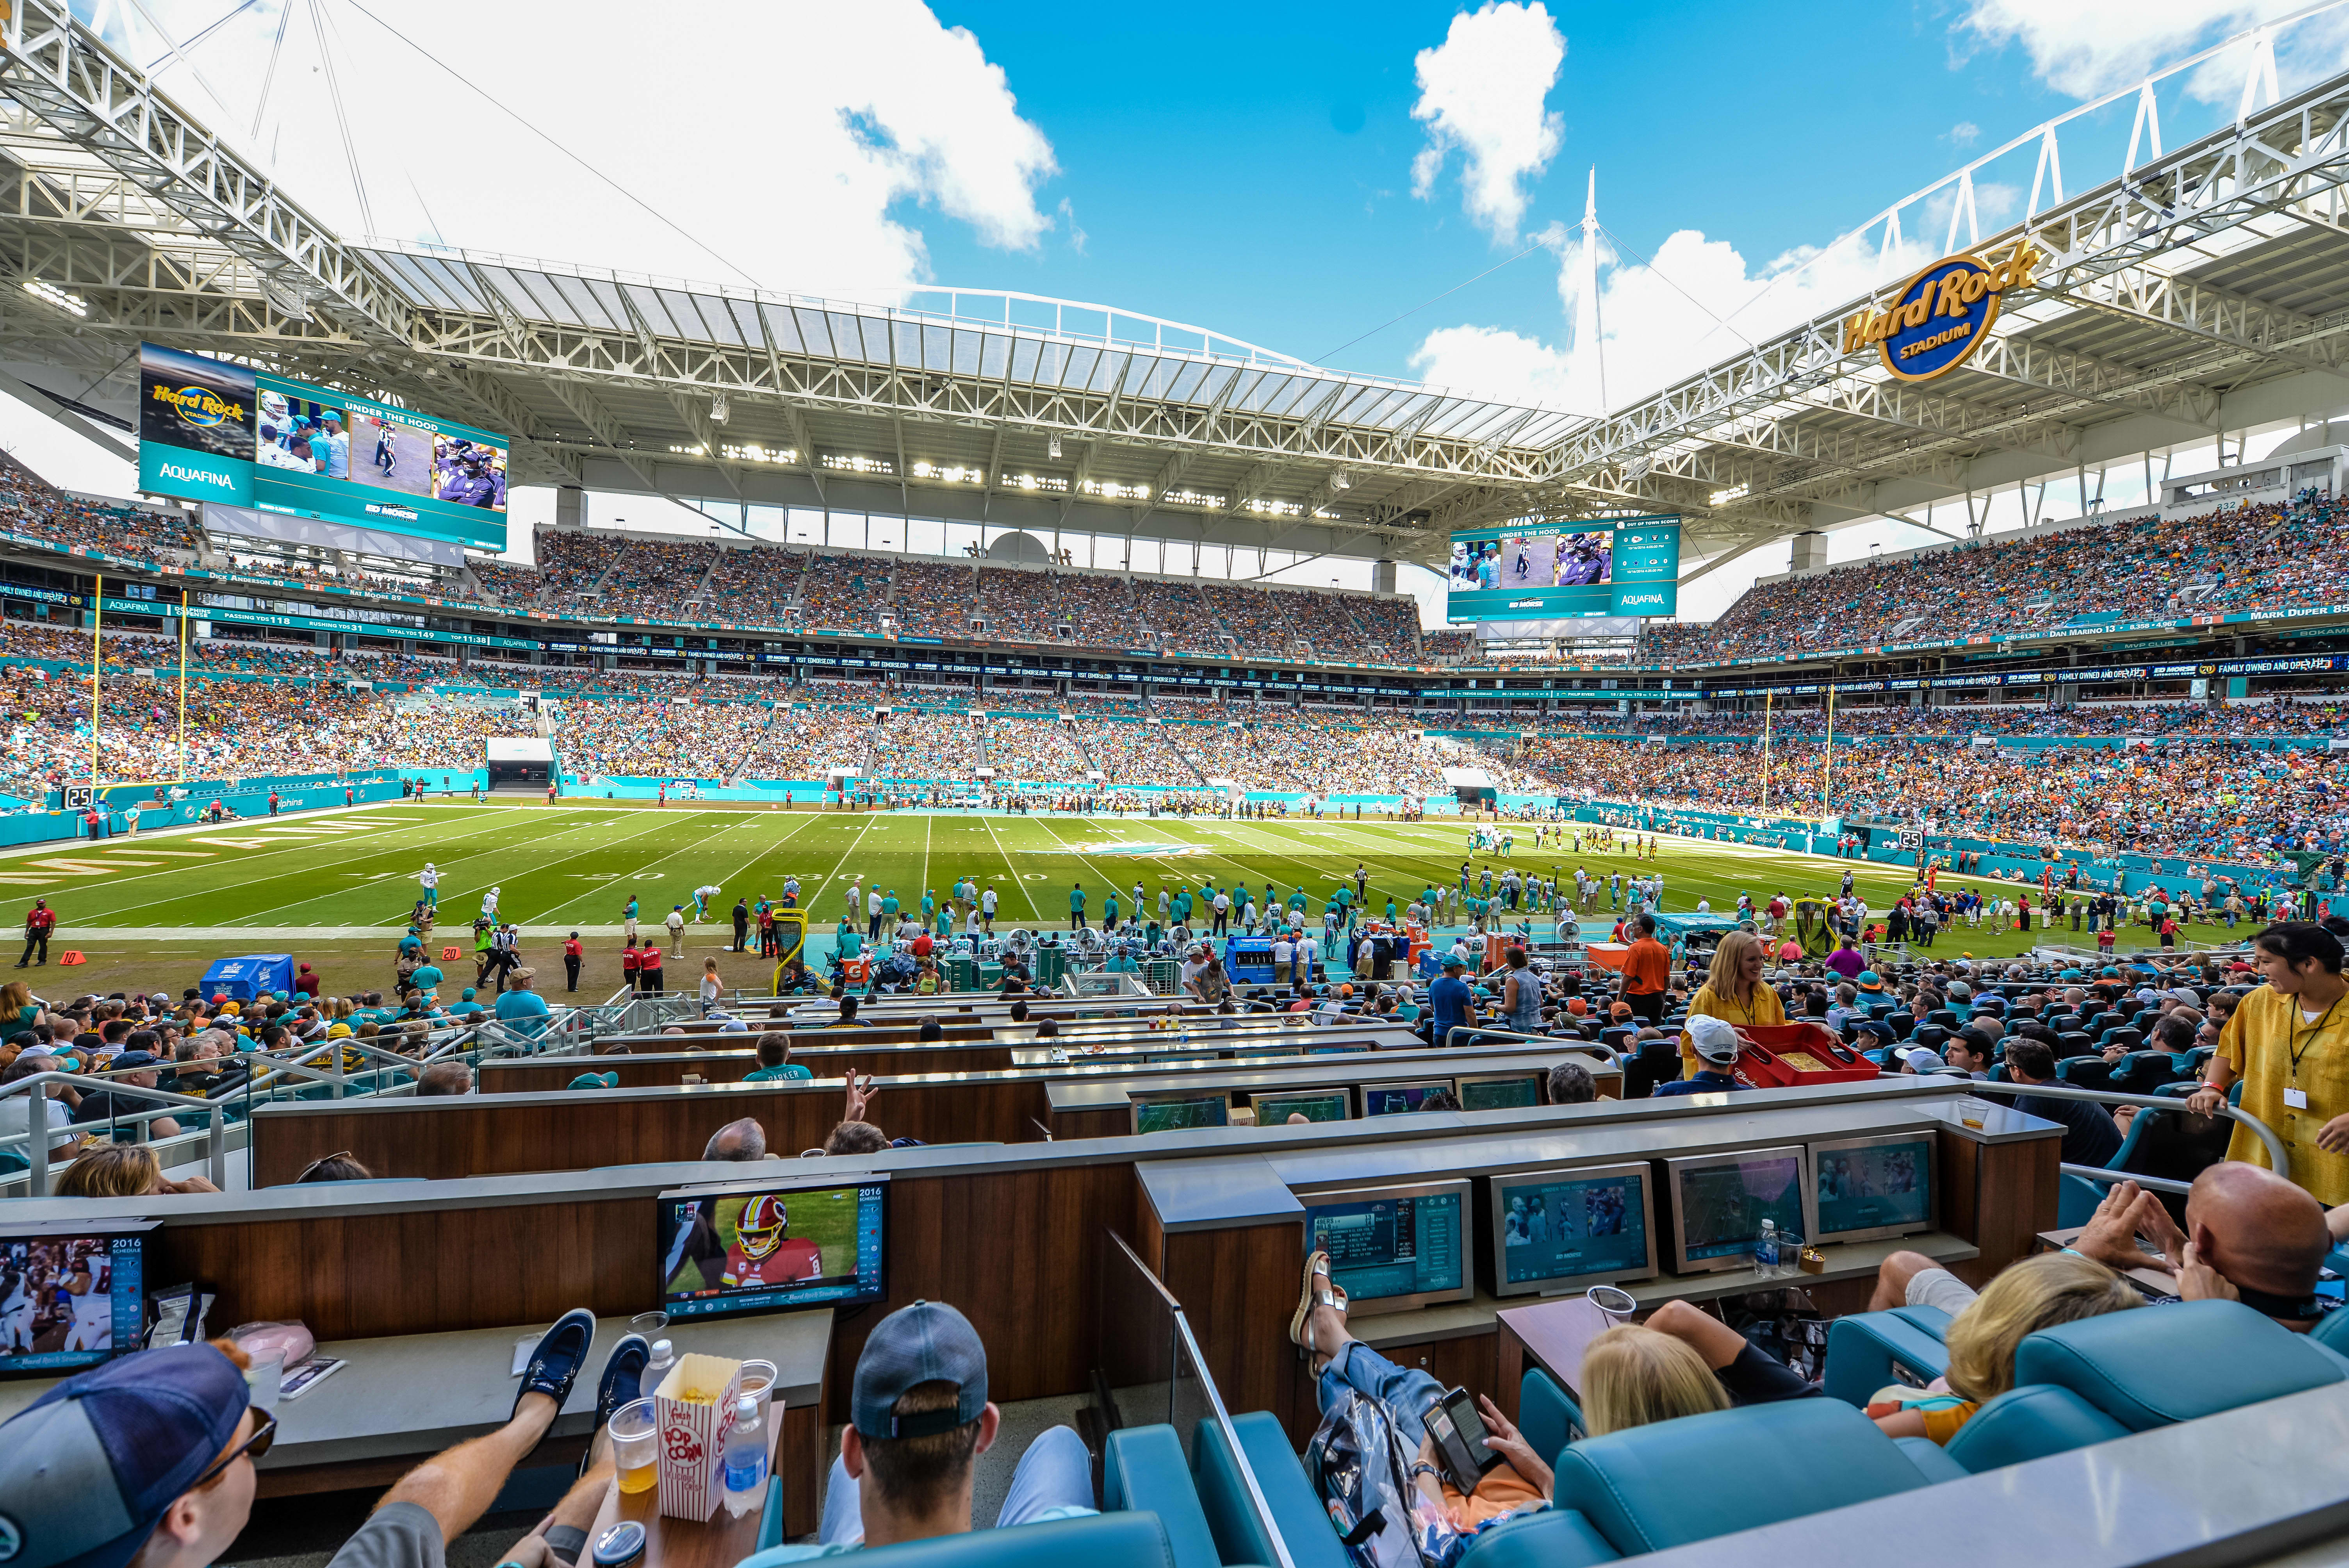 This is the view from most expensive seats at Super Bowl LIV in Miami—and they cost $35,000 each